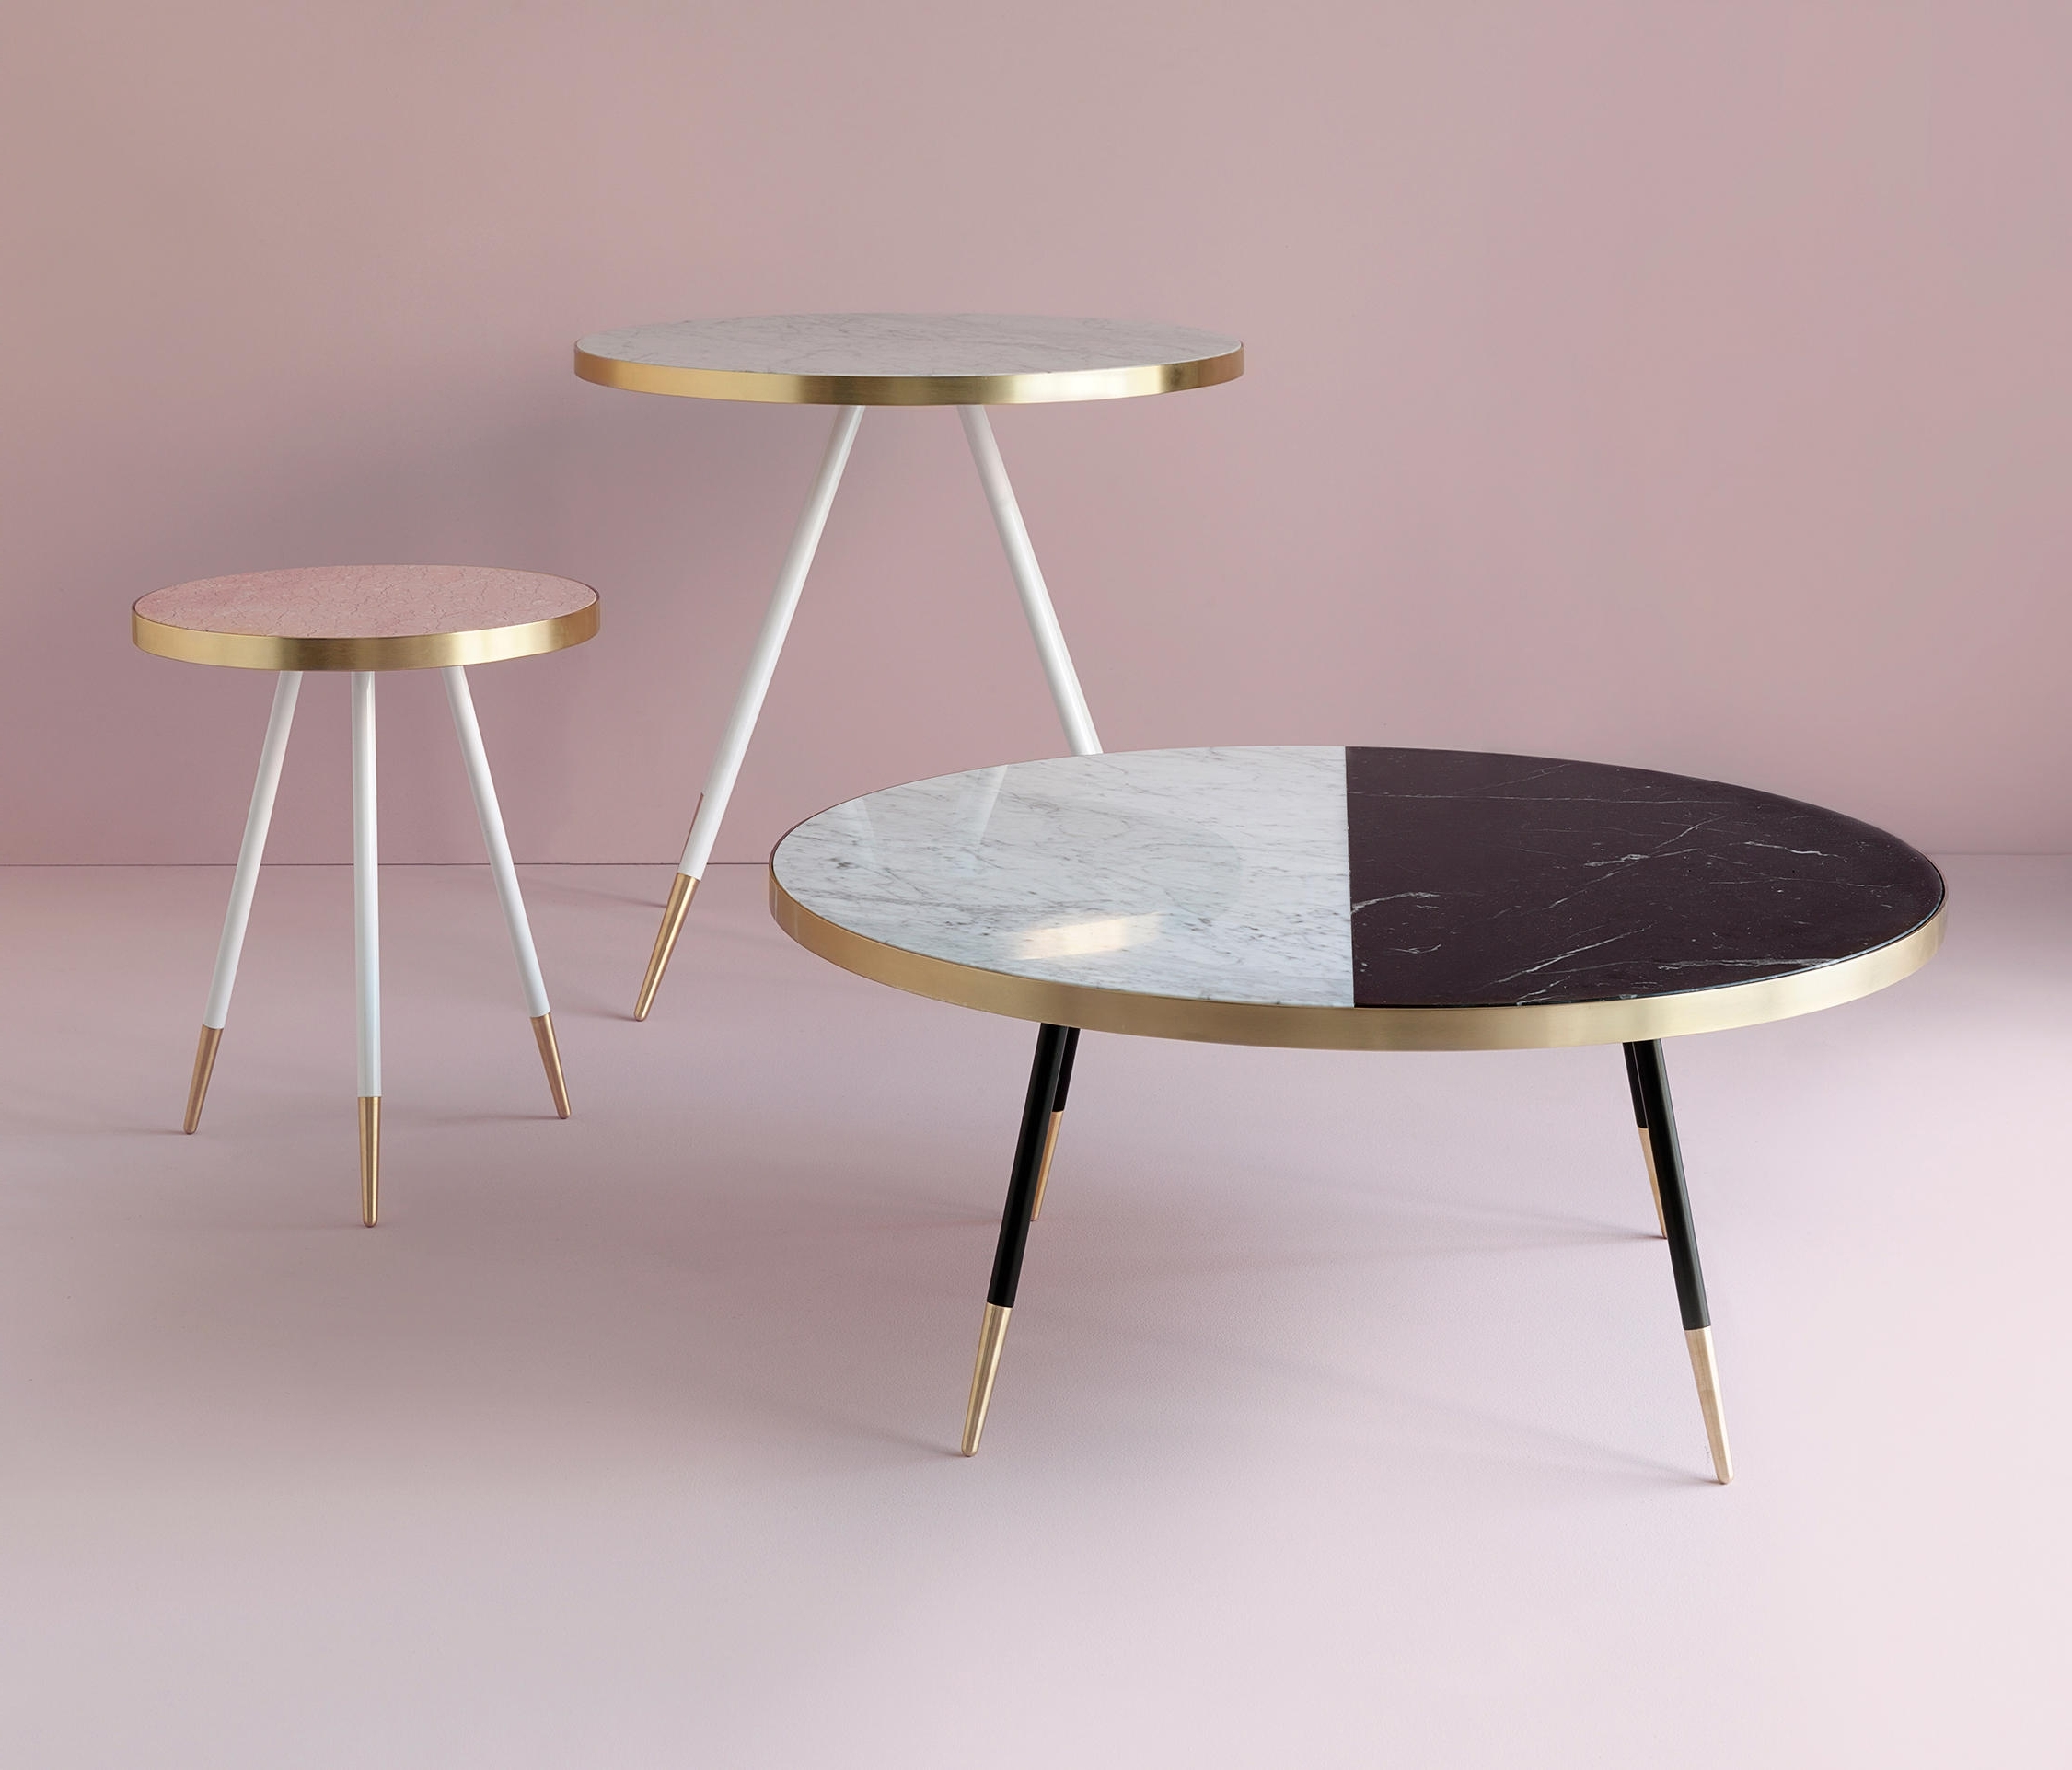 Famous 2 Tone Grey And White Marble Coffee Tables Intended For Band Marble Coffee Table – Coffee Tables From Bethan Gray (View 20 of 20)